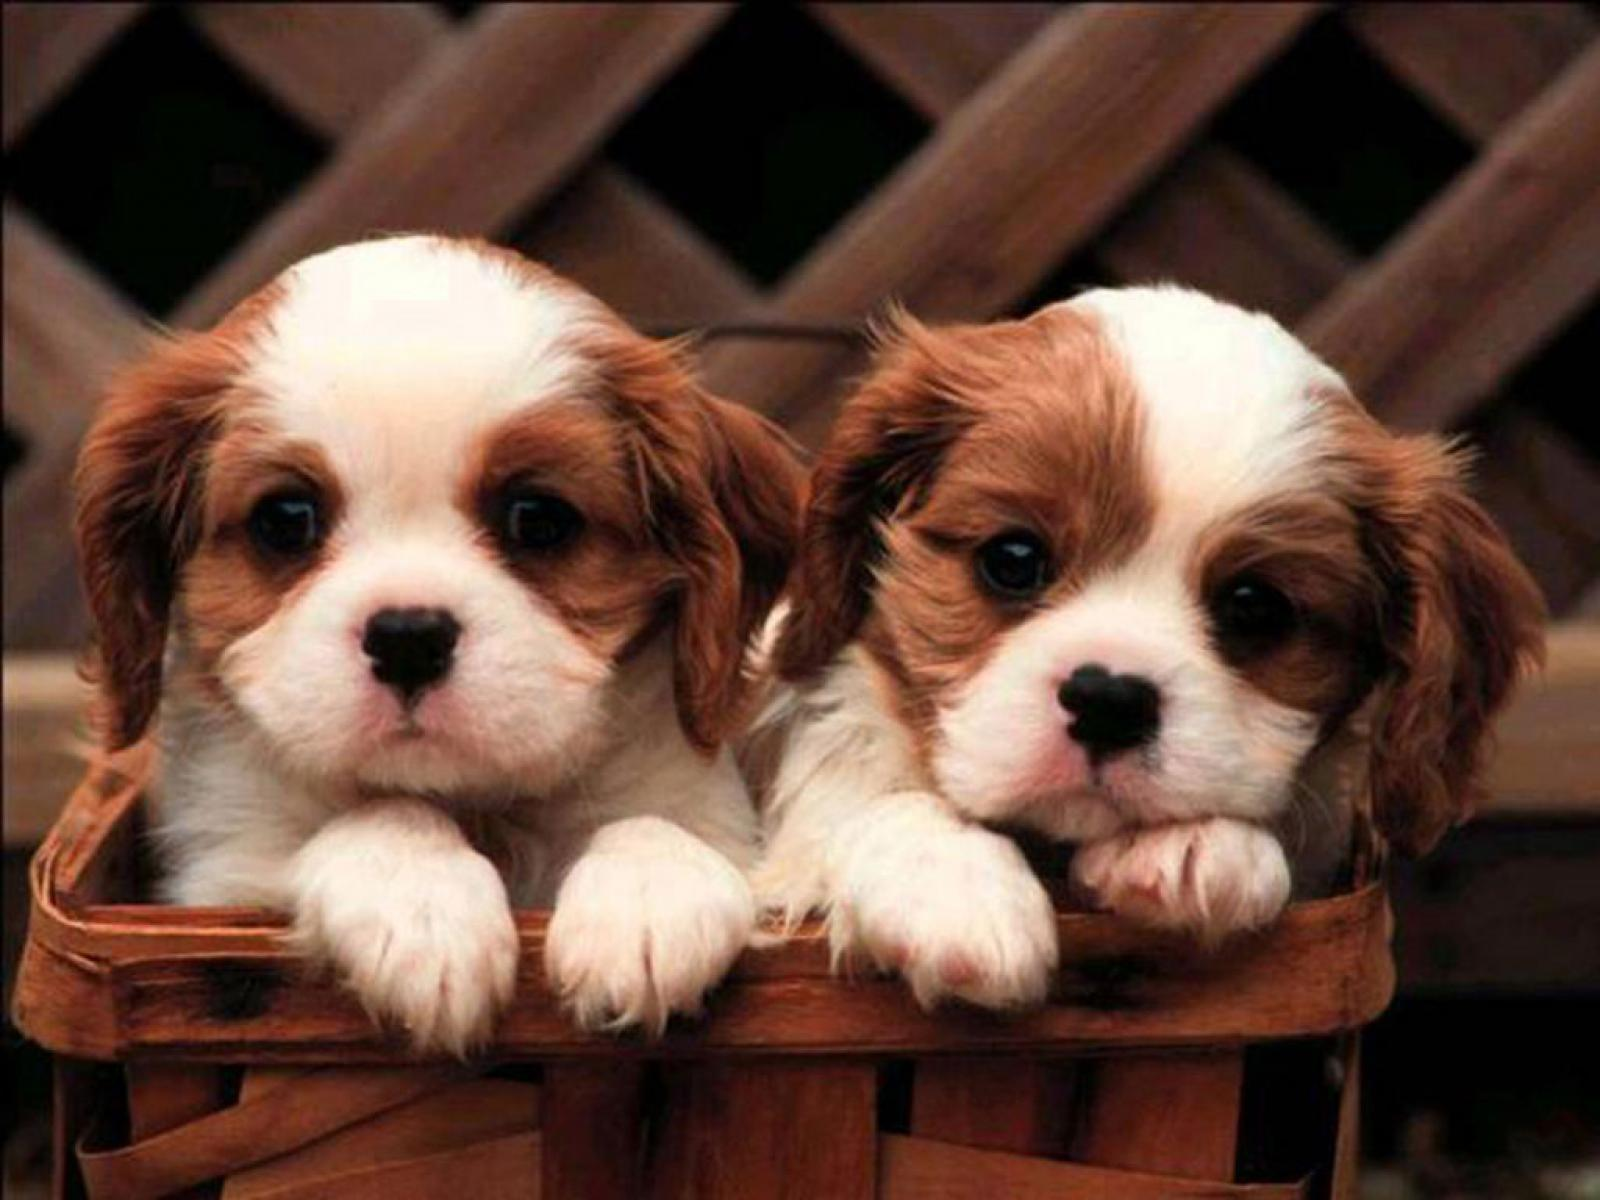 Cute Baby Puppies Wallpaper Widescreen 2 HD Wallpapers | Planezen.com